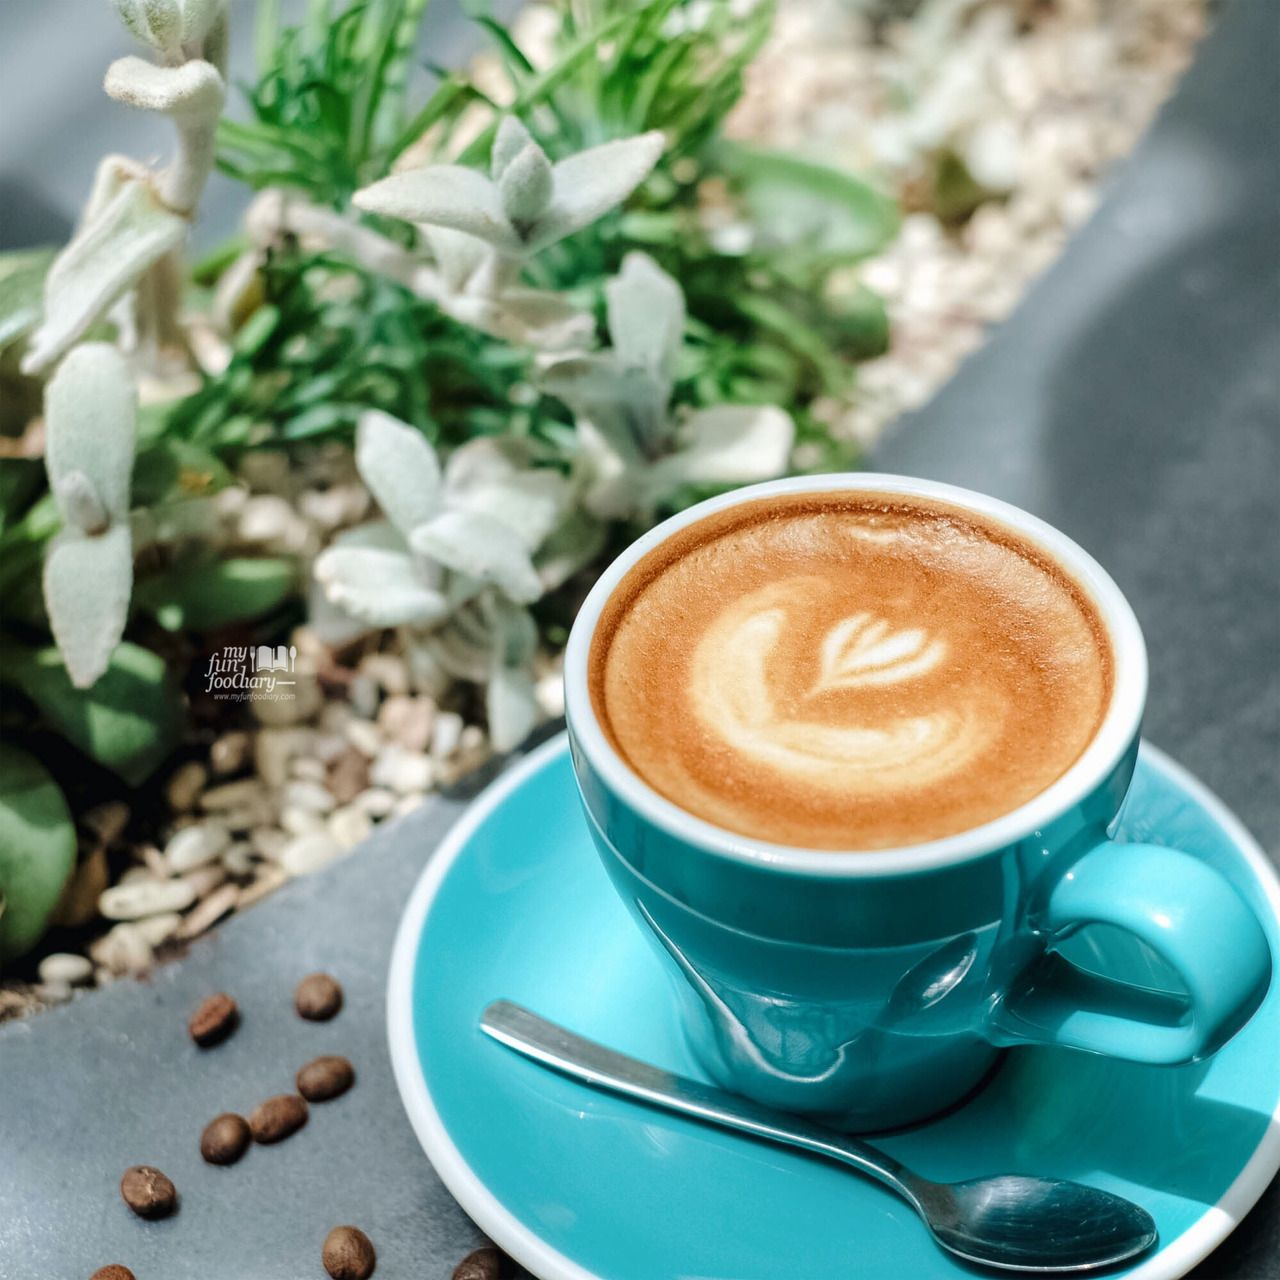 [BANDUNG] Sydwic Cafe All White Instagenic Cozy Cafe